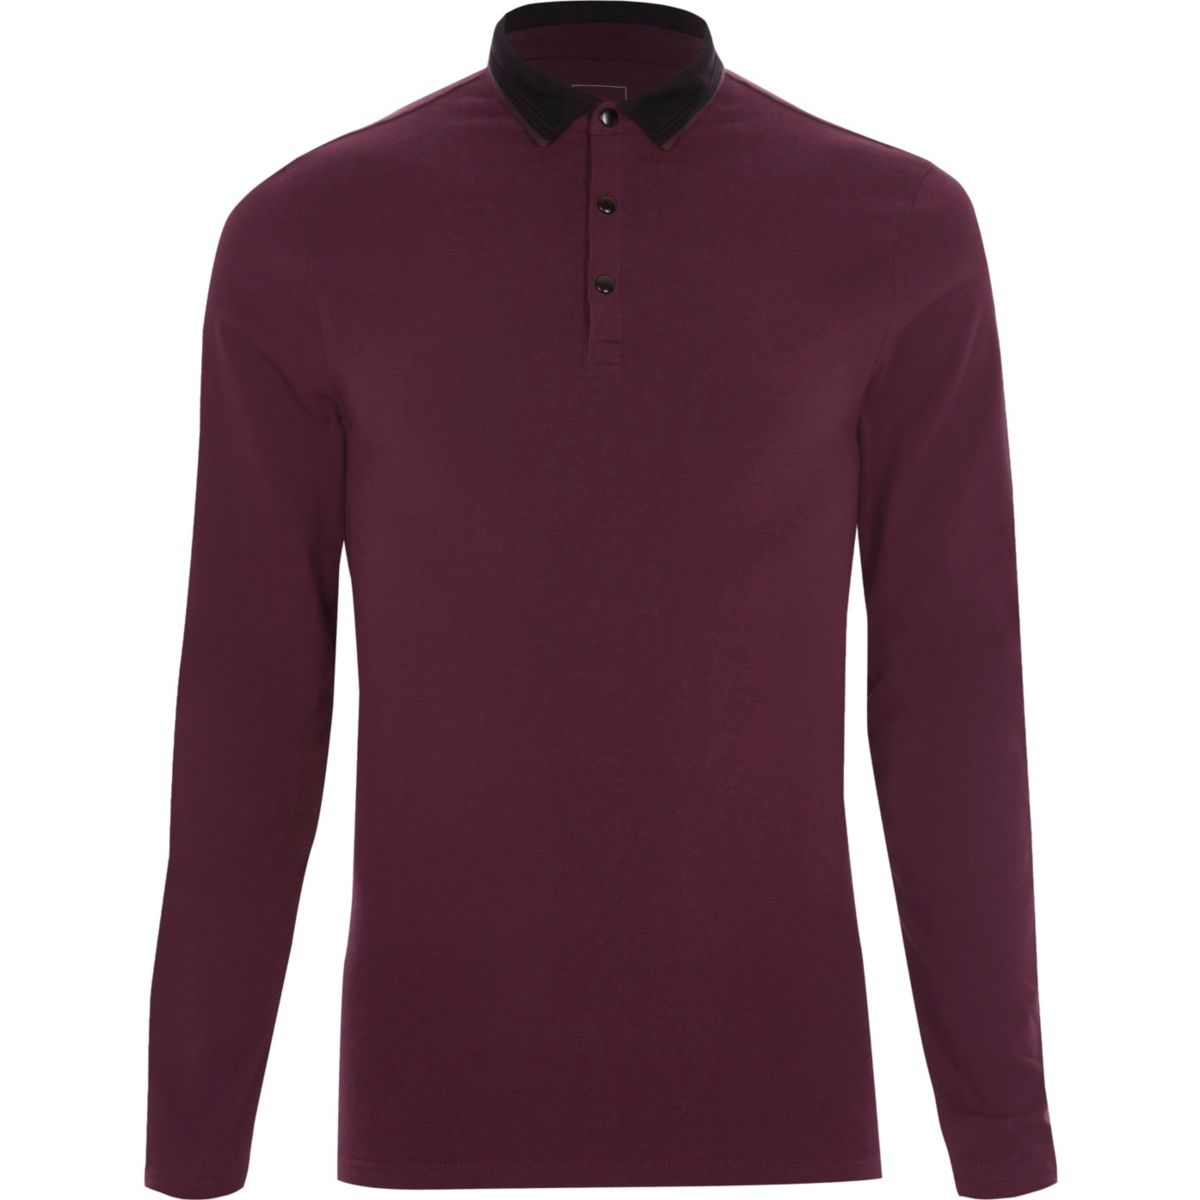 Burgundy tipped muscle fit polo shirt polo shirts sale Burgundy polo shirt boys